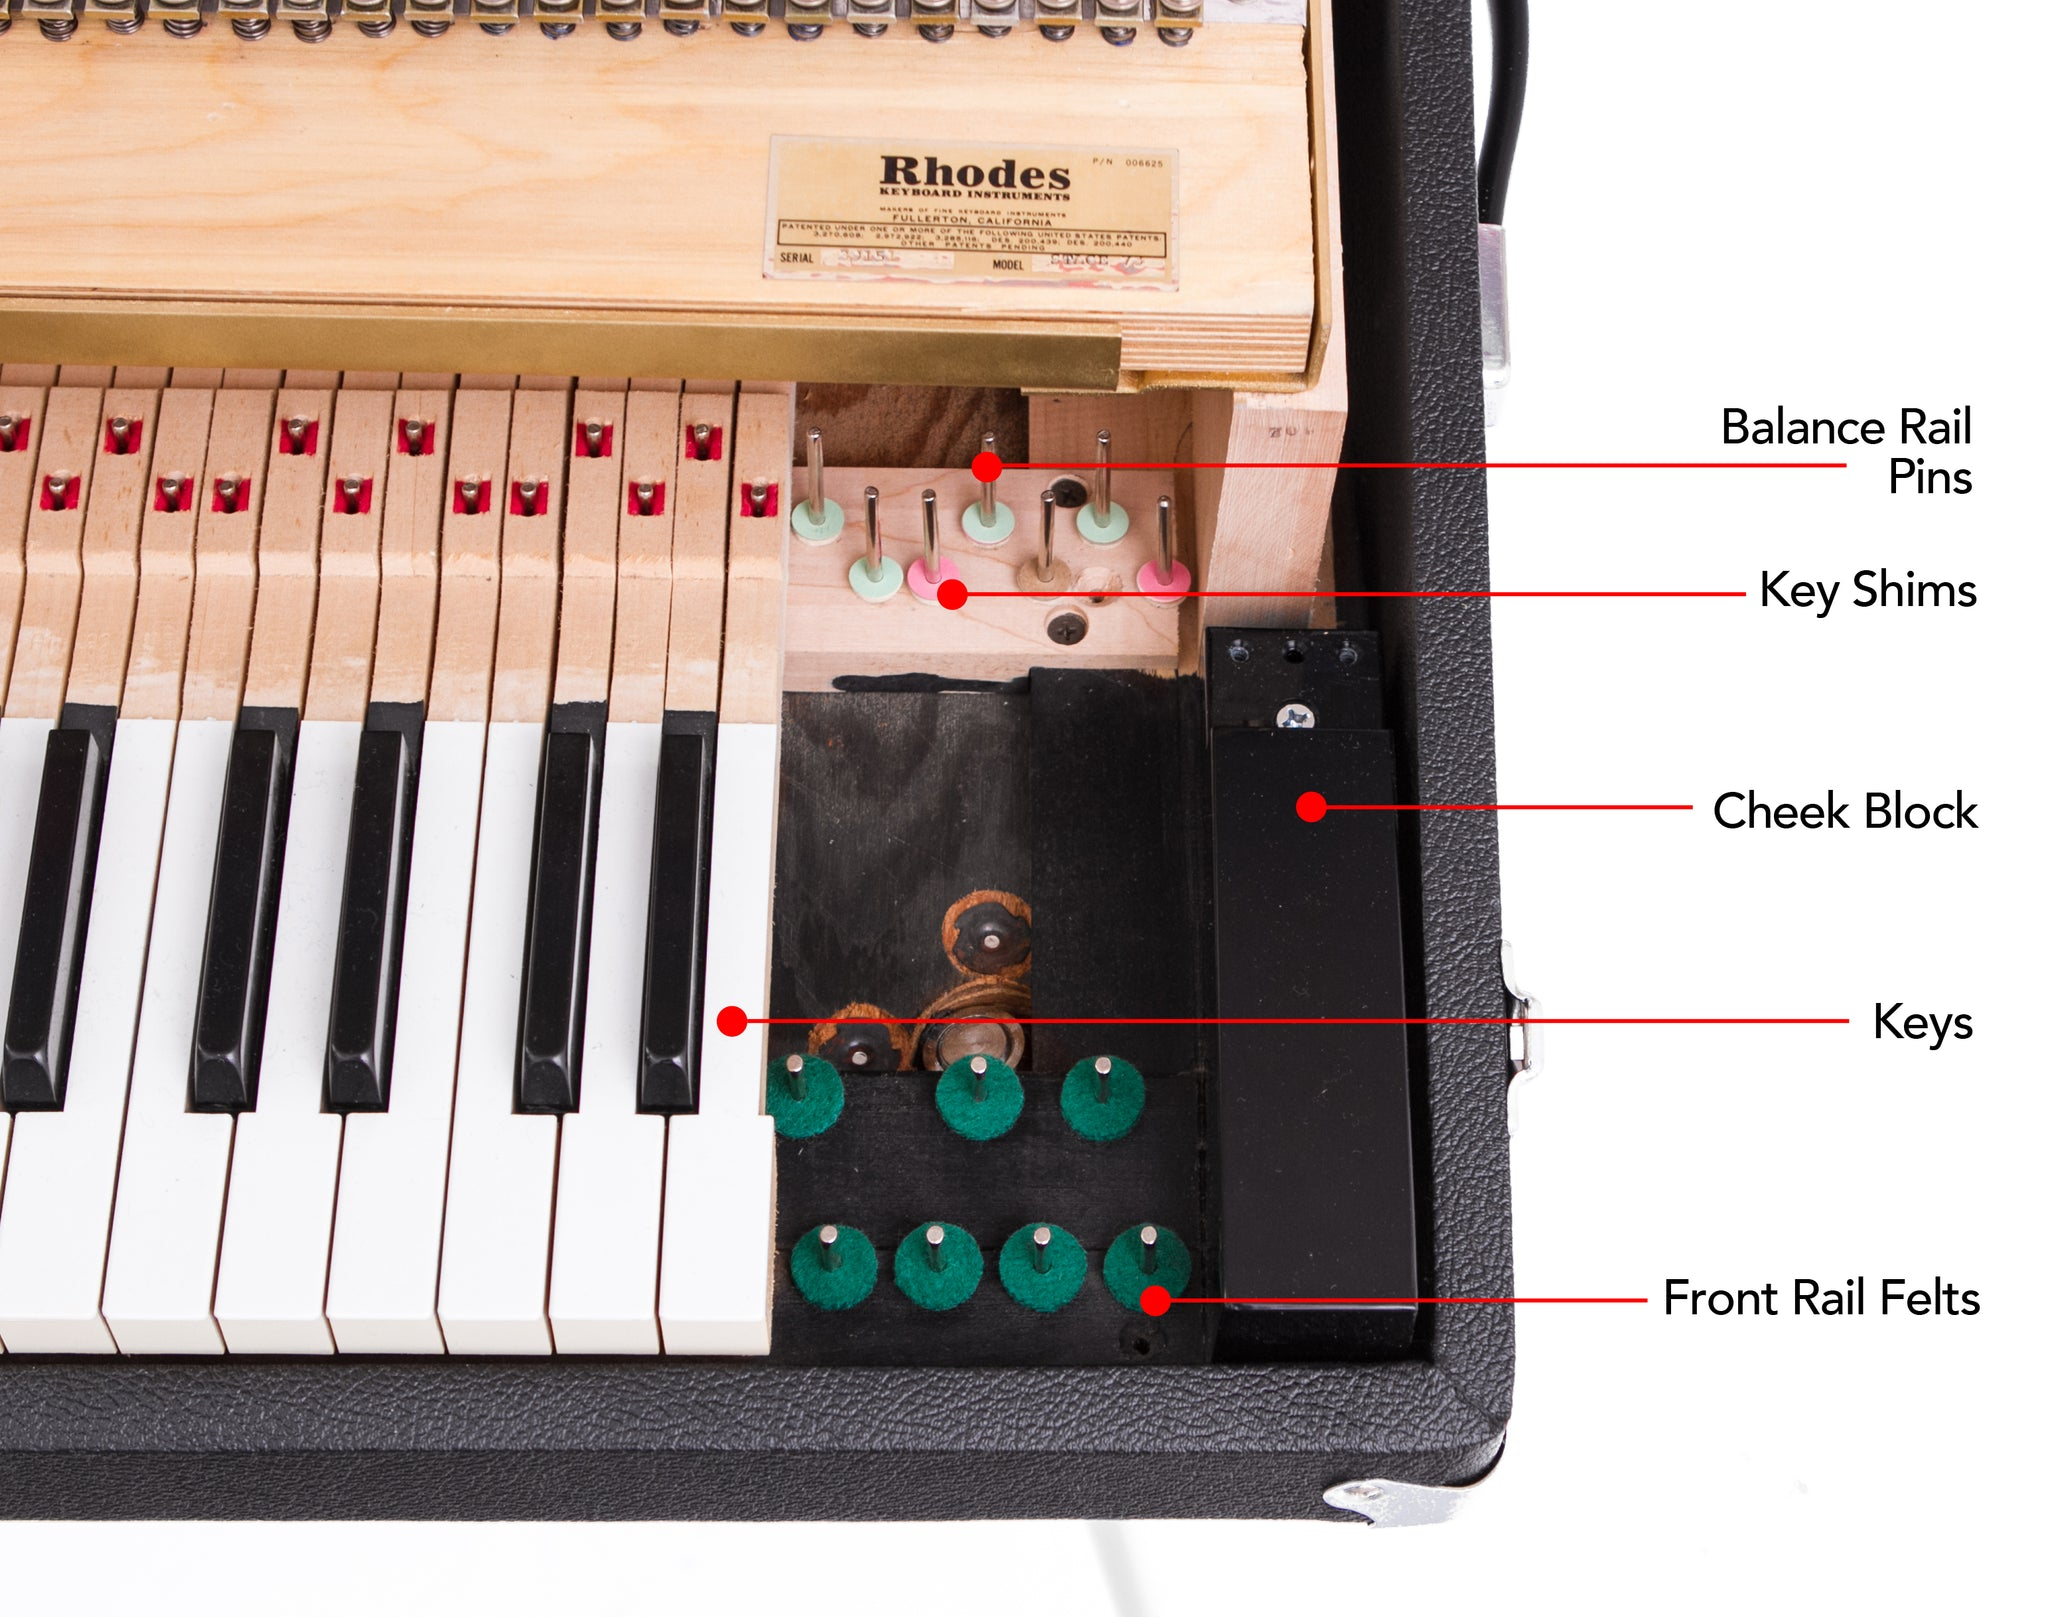 Fender rhodes piano diagram vintage vibe no matter what condition you find an old fender rhodes in you can restore it to new condition with vintage vibe parts pooptronica